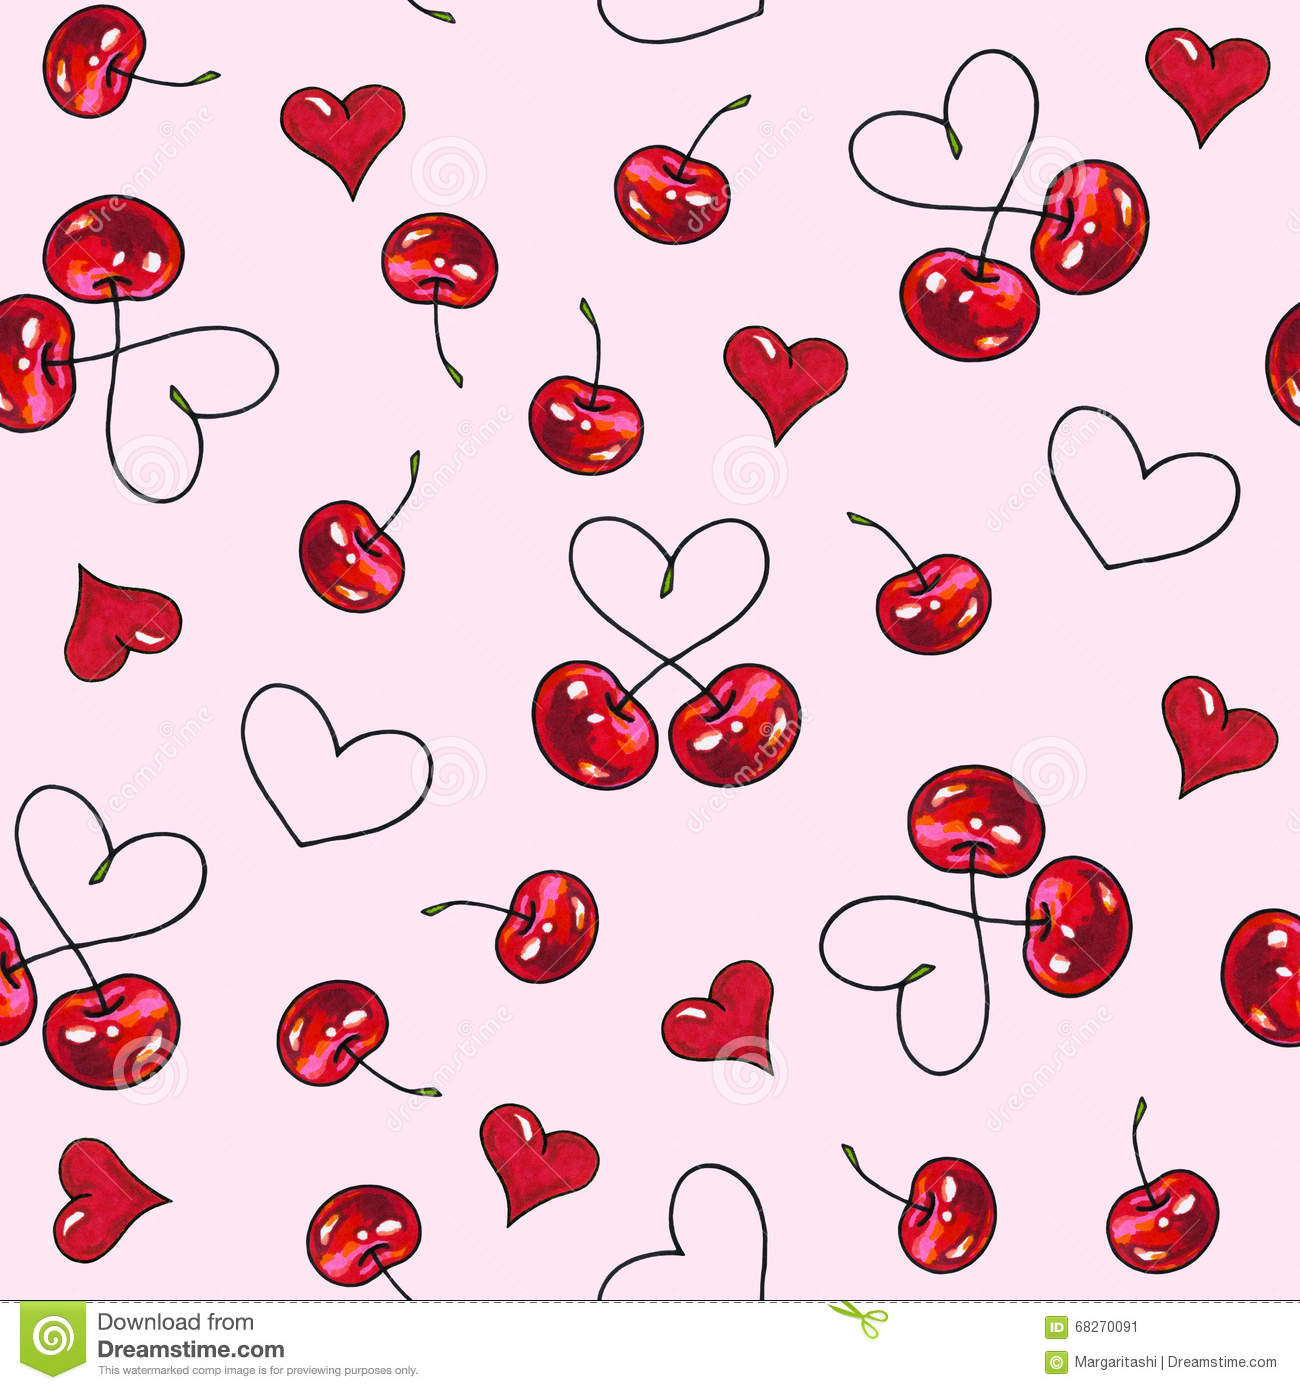 Cherry sweet on a pink background. Seamless pattern for design. Animation illustrations. Handwork